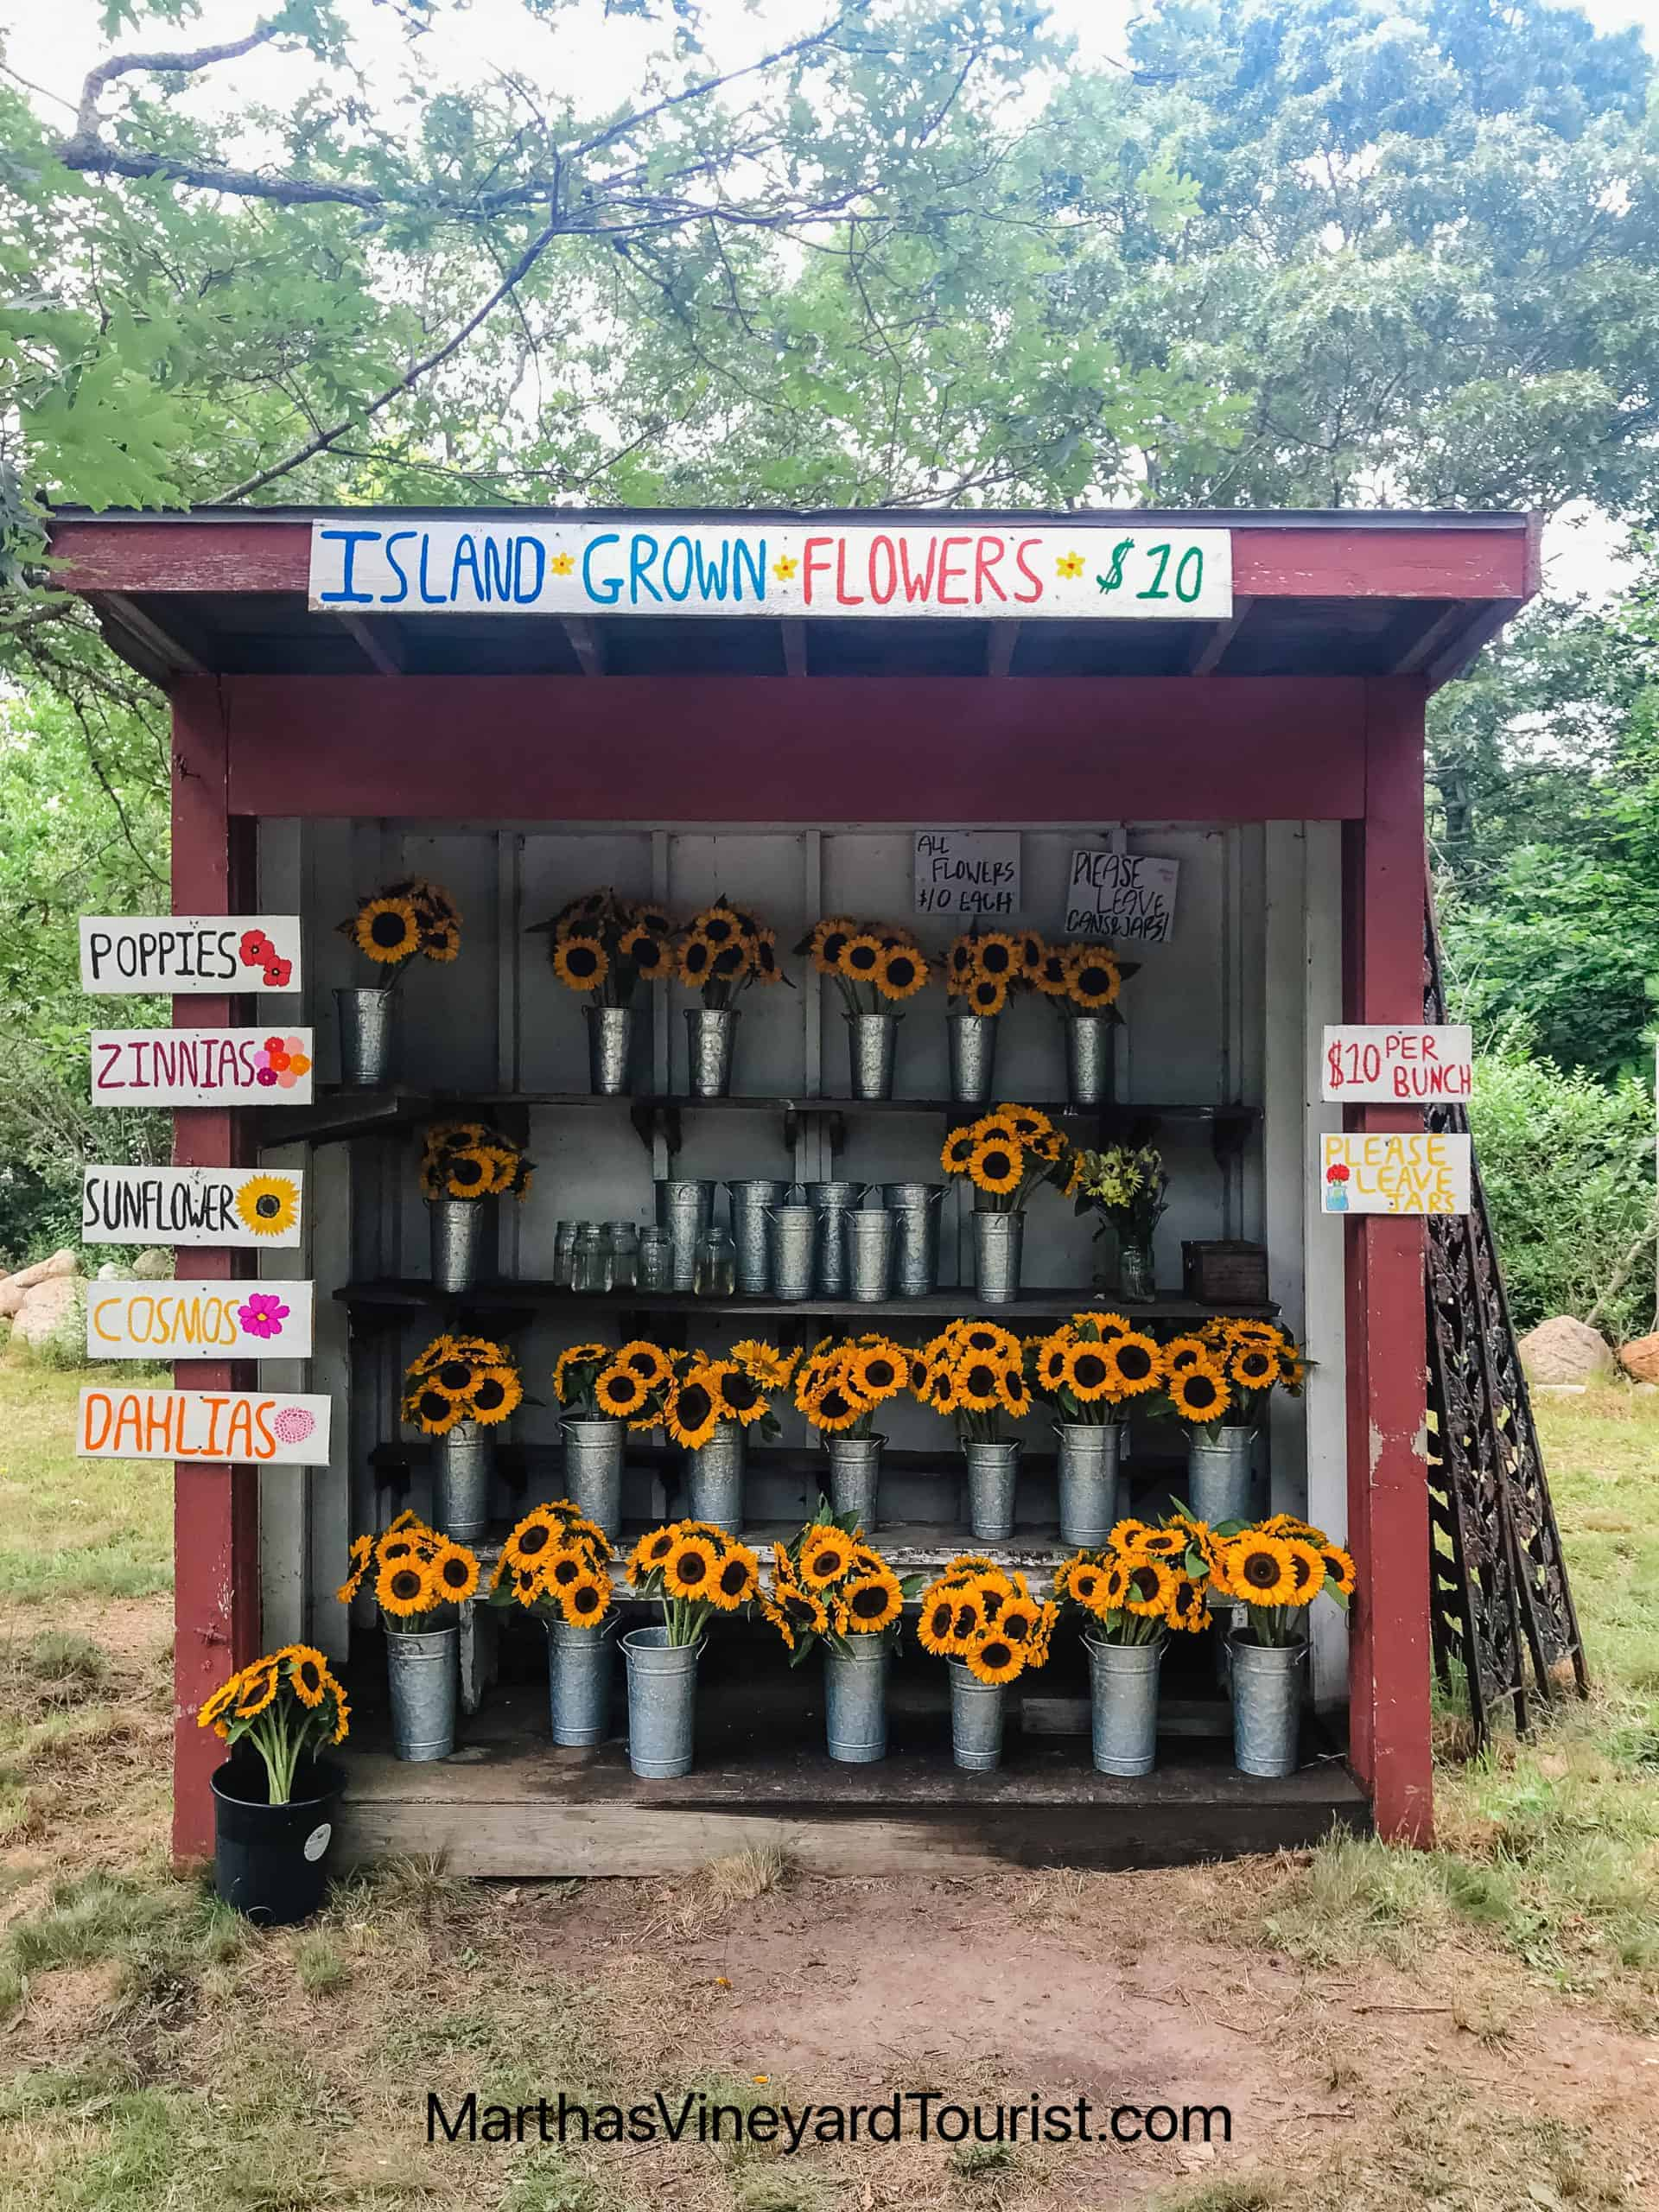 a sunflower stand offering bunches of sunflowers for $10 in Martha's Vineyard